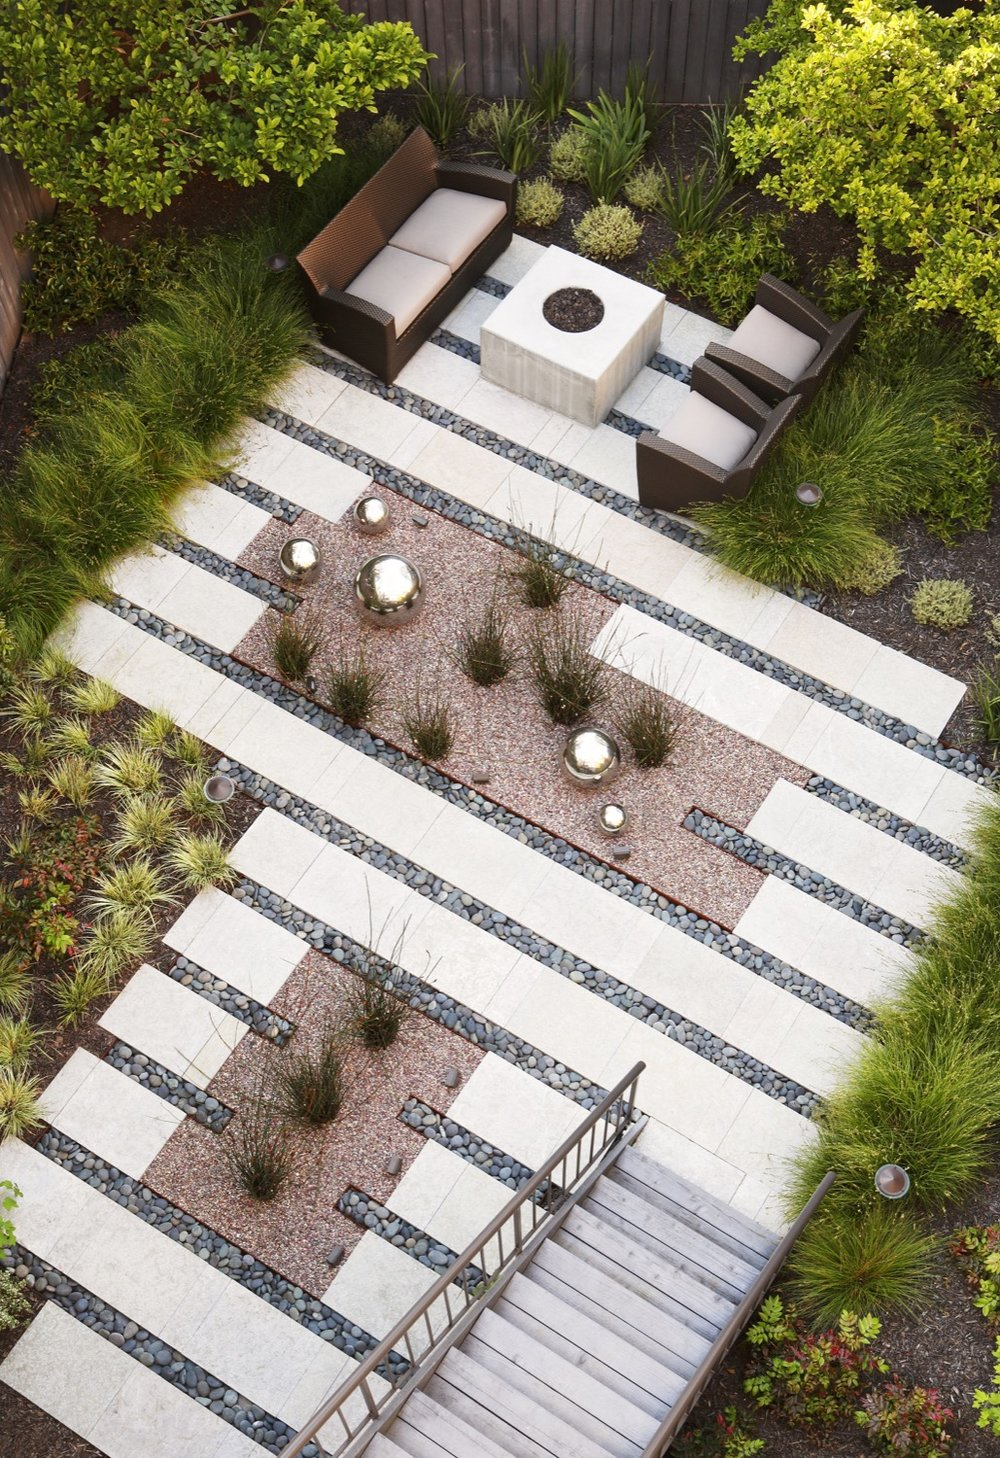 The angle of the stairs and the way it is reflected in the bands of paving is shown in an arial view.